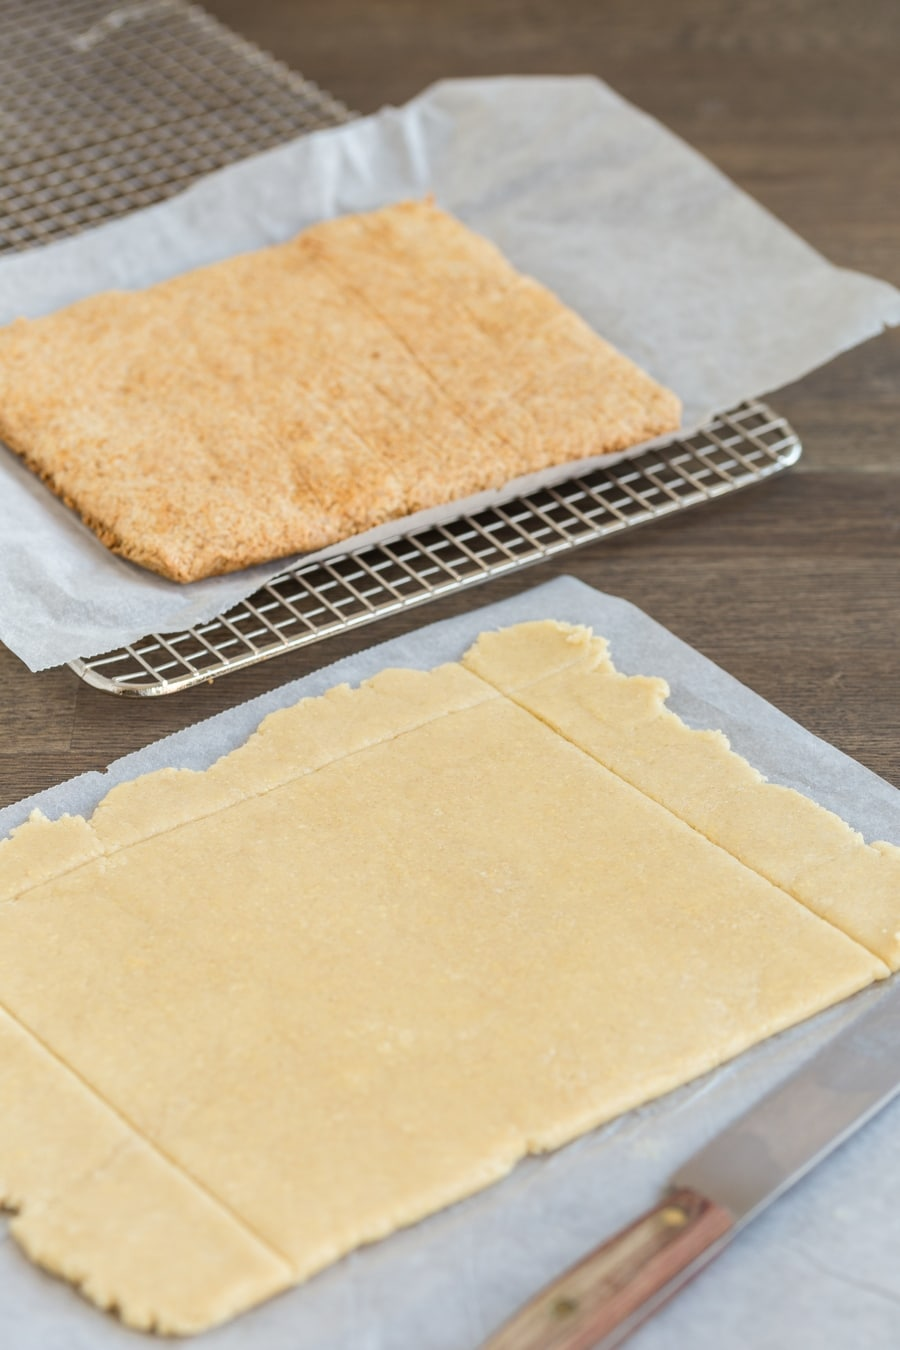 Baked and unbaked layers of honey shortcrust pastry.